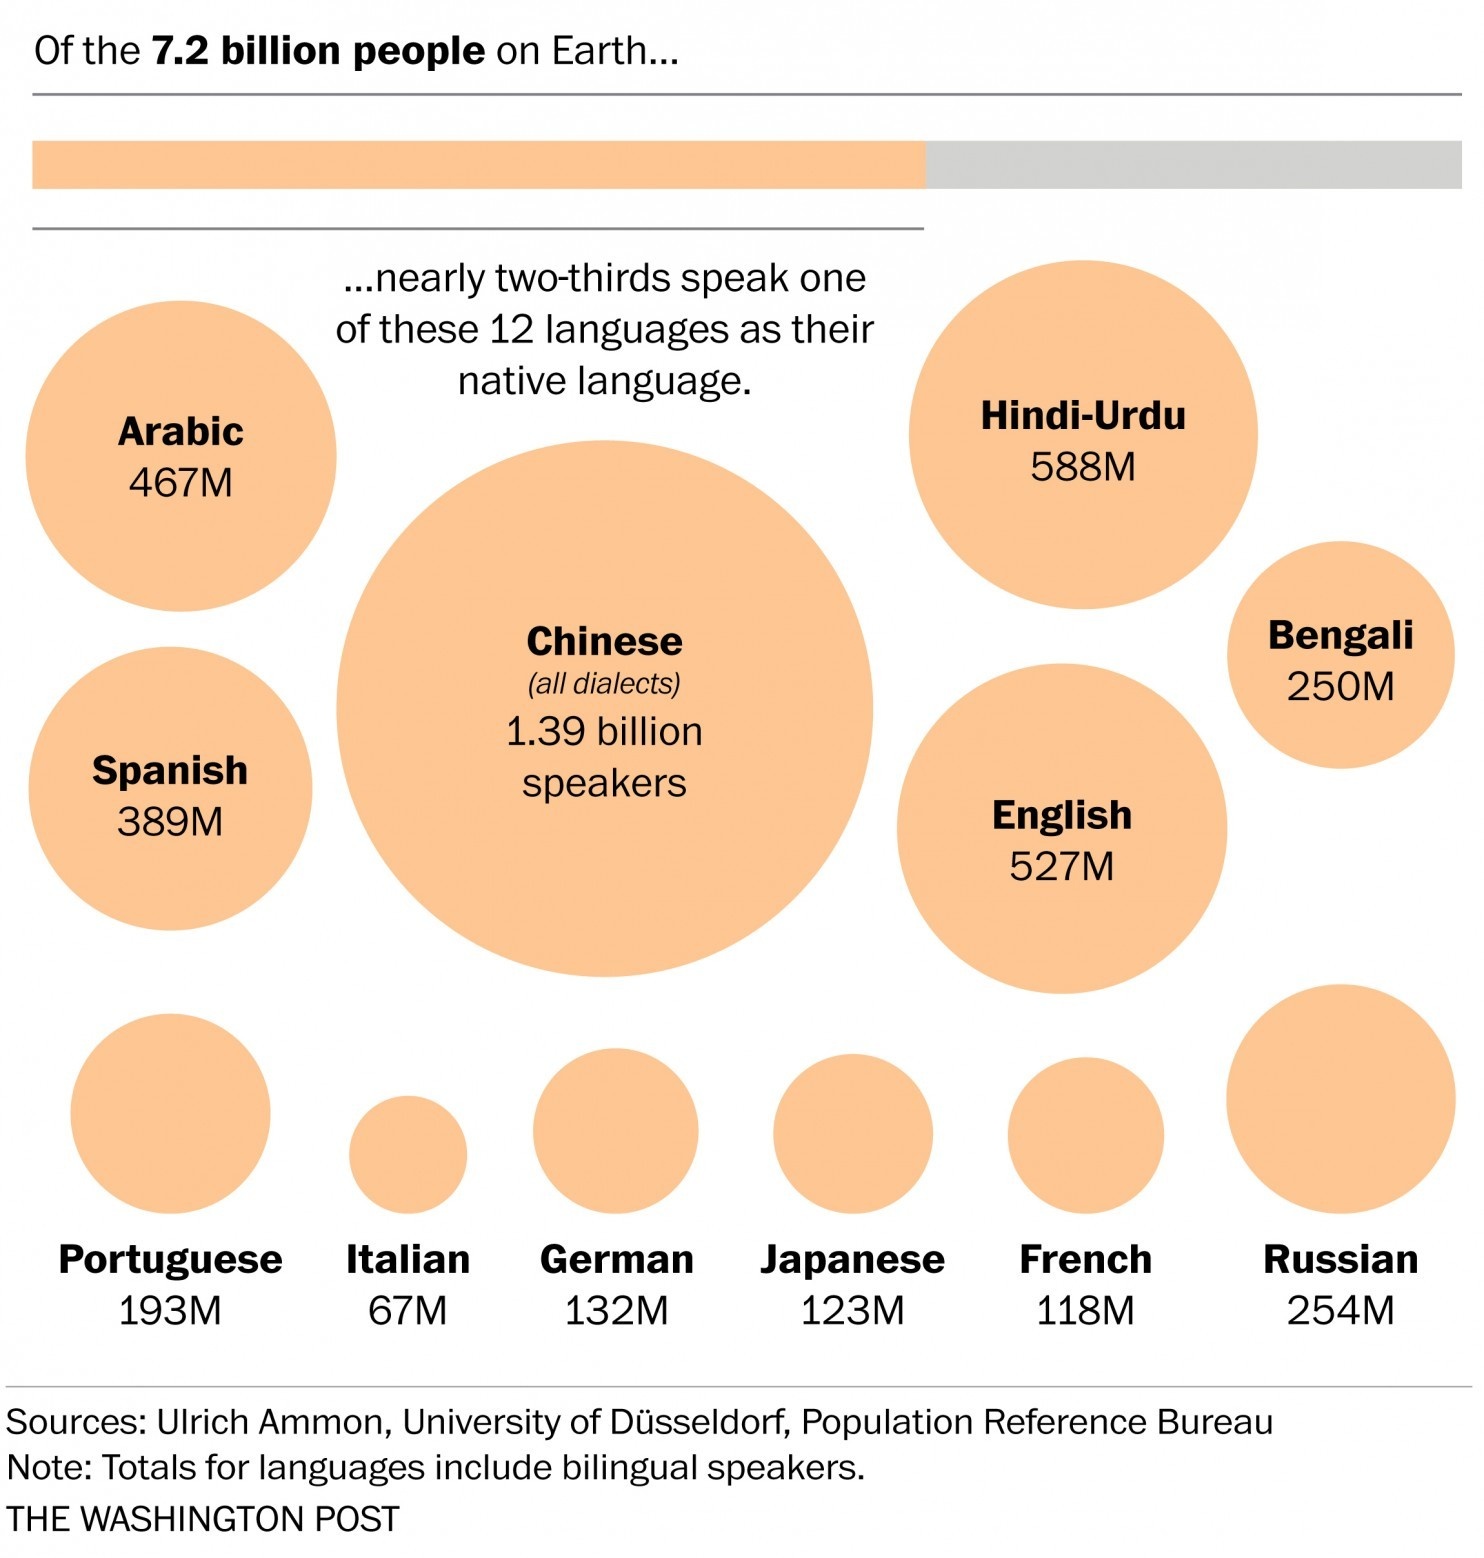 languages-all-over-the-world